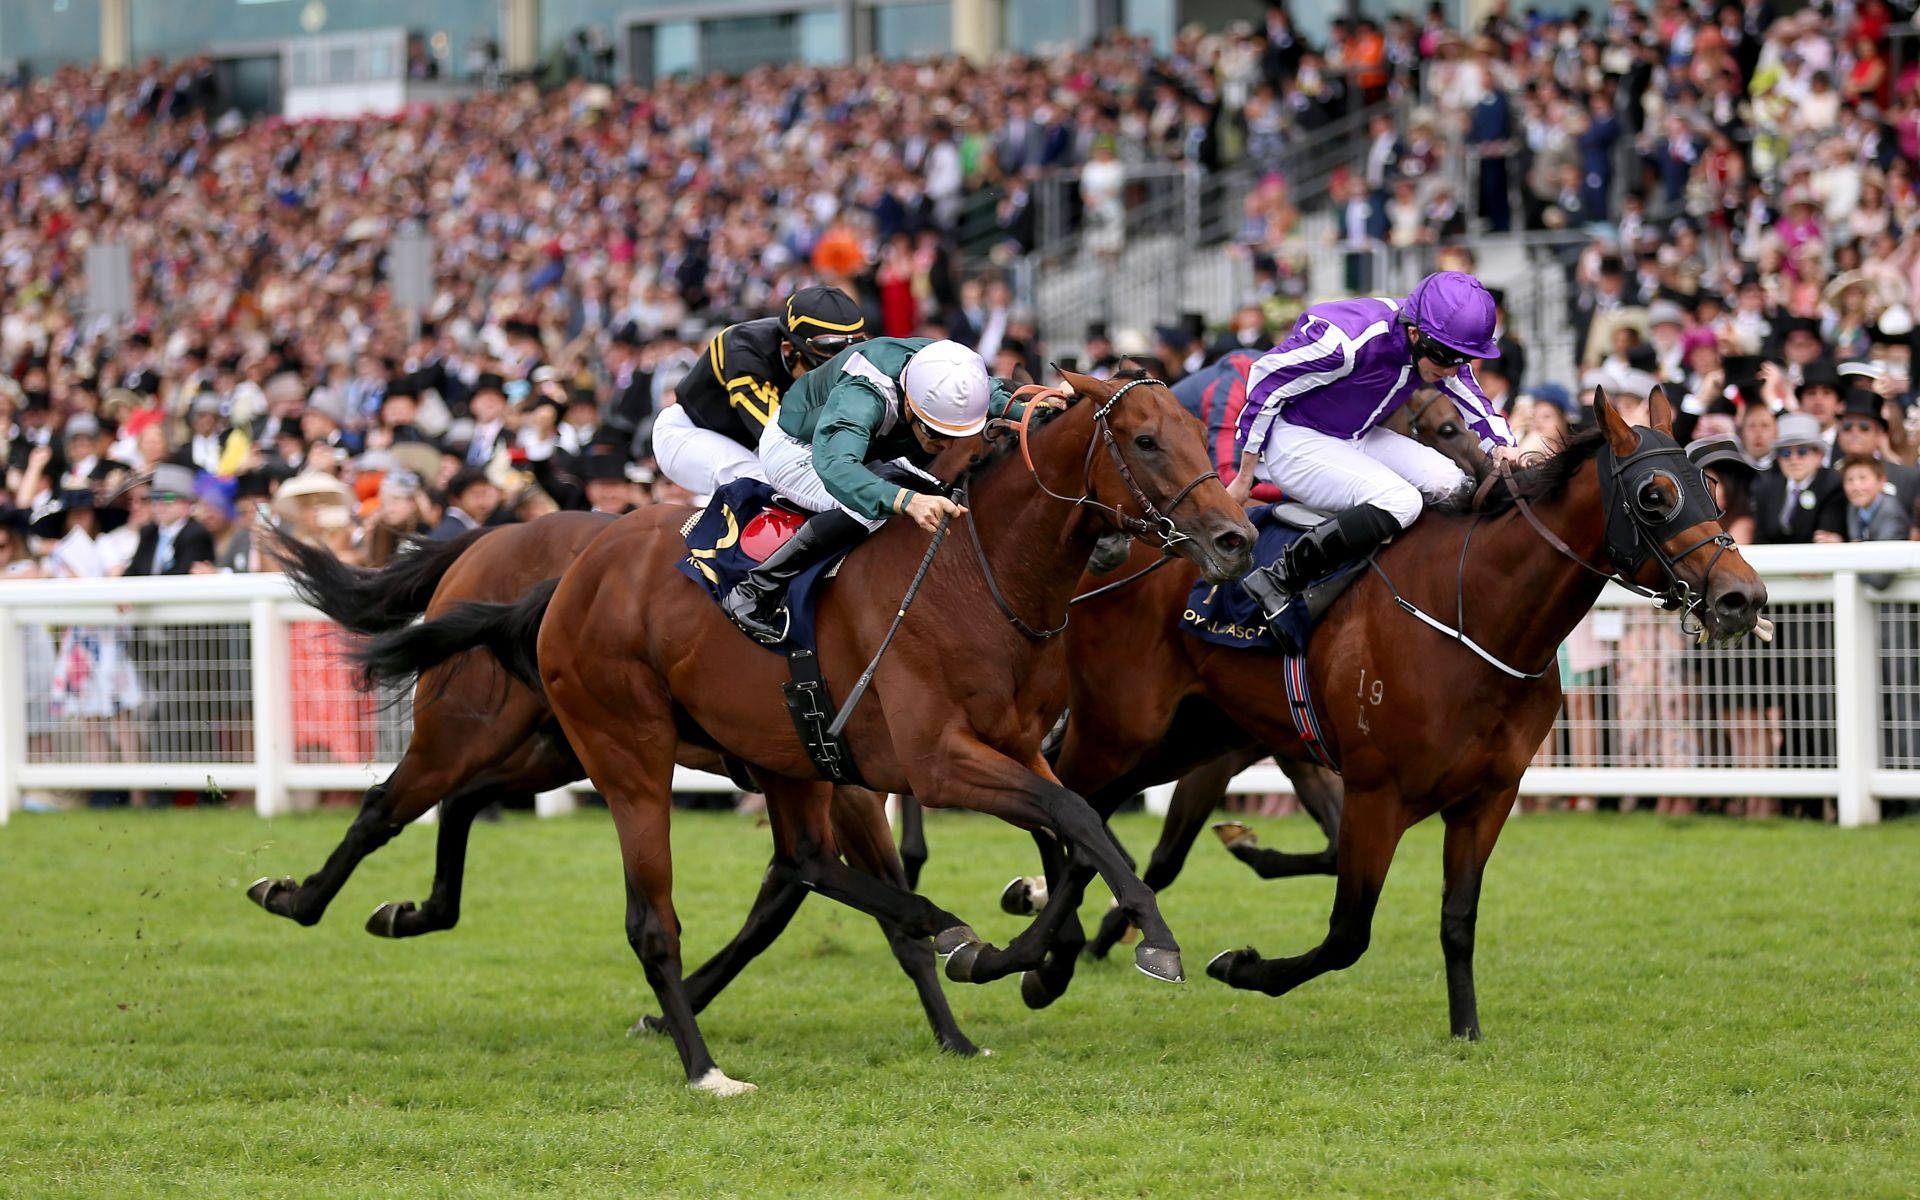 Diamond jubilee stakes 2021 betting financial spread betting explained meaning